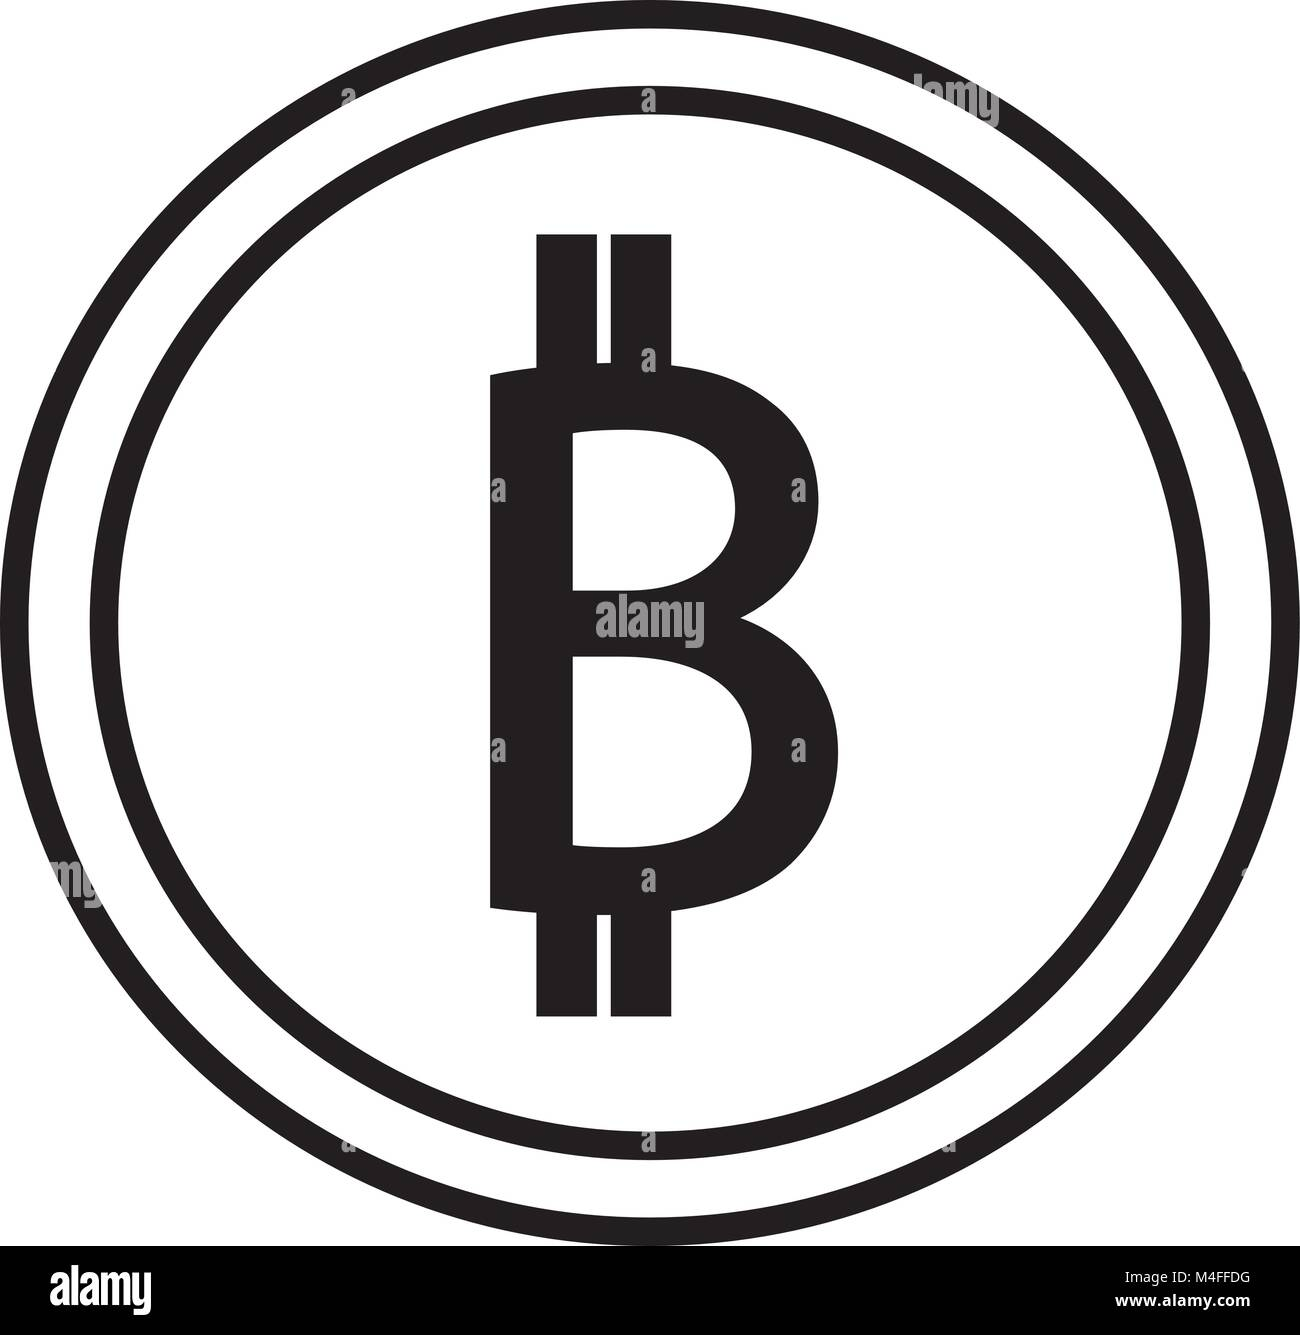 Bitcoin crypto currency icon or logo vector over a coin symbol bitcoin crypto currency icon or logo vector over a coin symbol for bank or banking on a digital economy with virtual cash and currencies used for com biocorpaavc Gallery